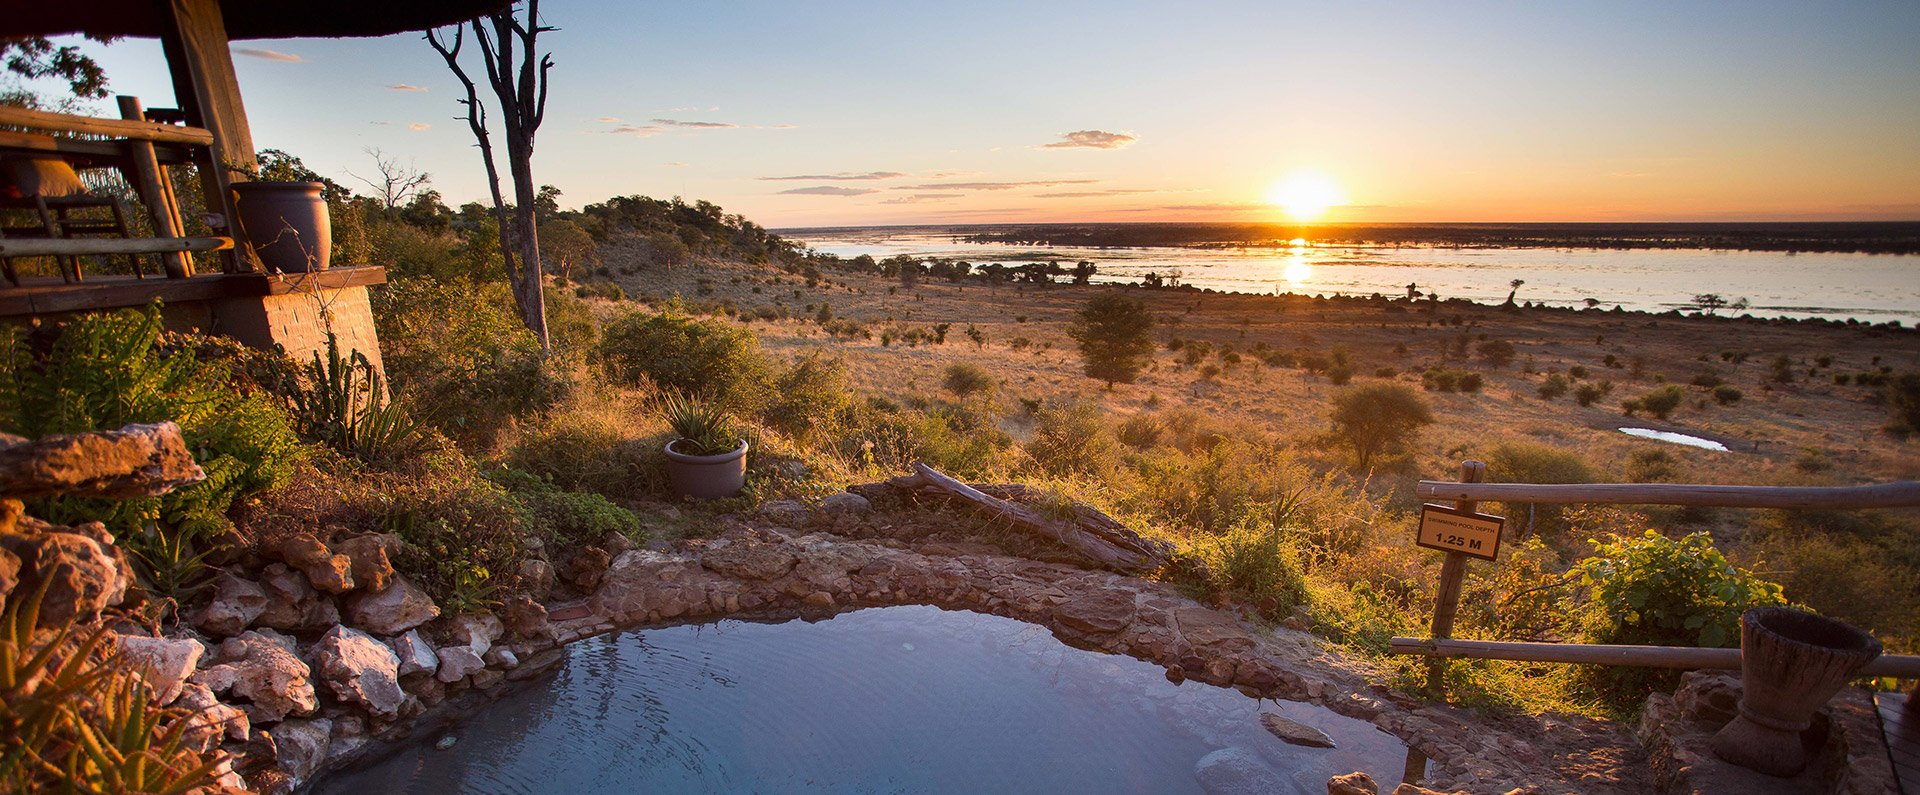 Ngoma Safari Lodge Chobe Sunset Pool